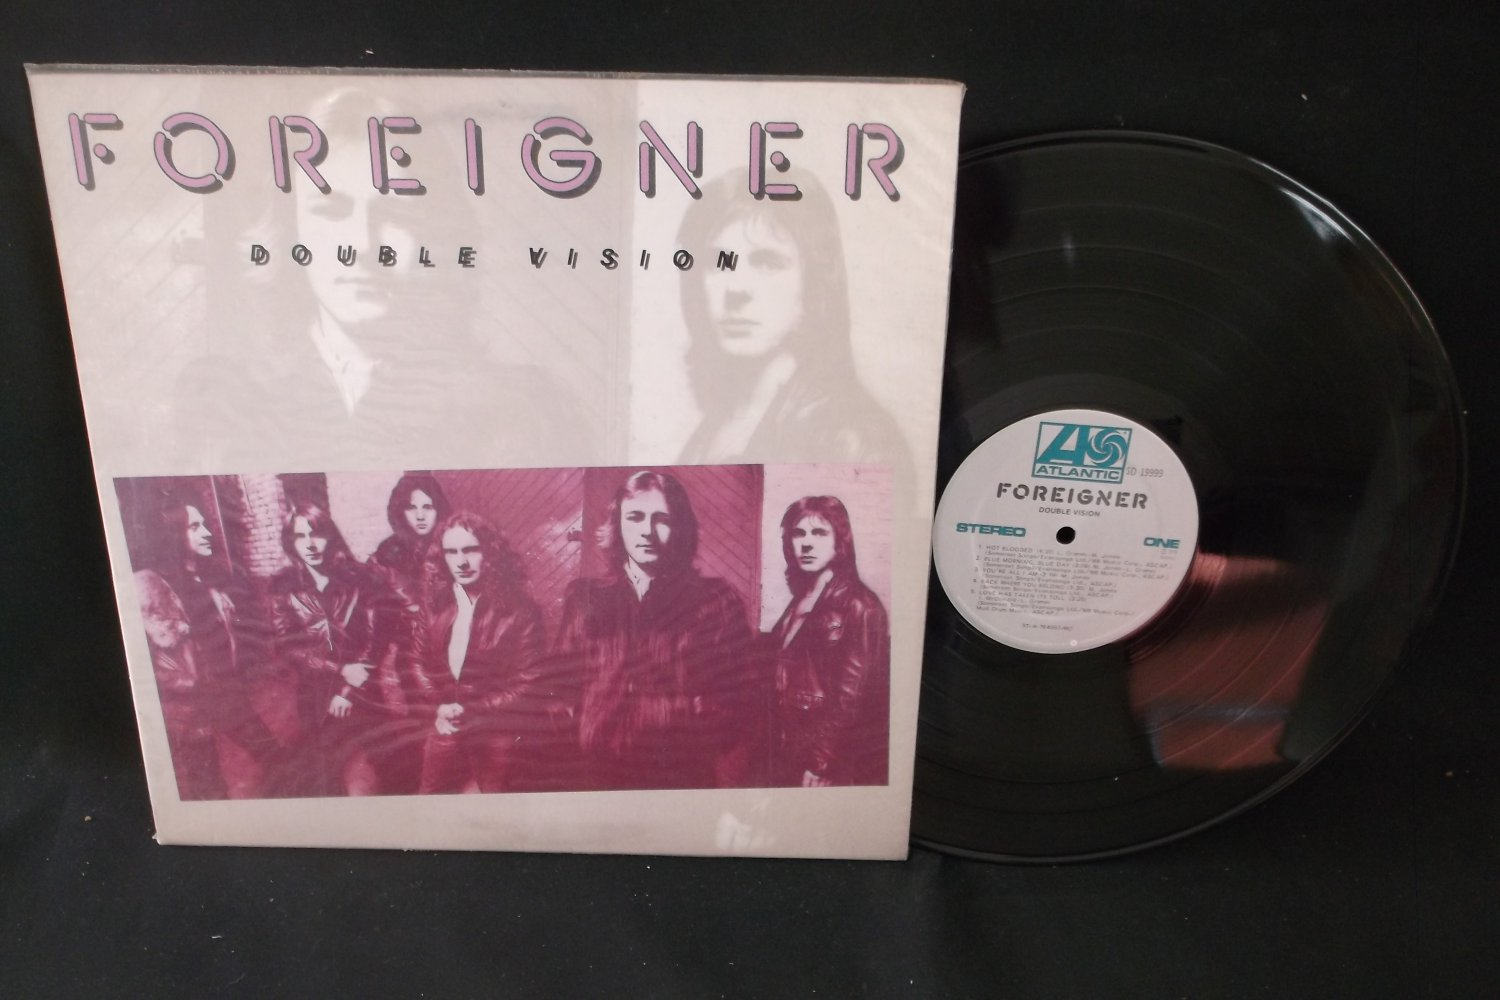 Foreigner - Double Vision - ATLANTIC 19999 - Record LP